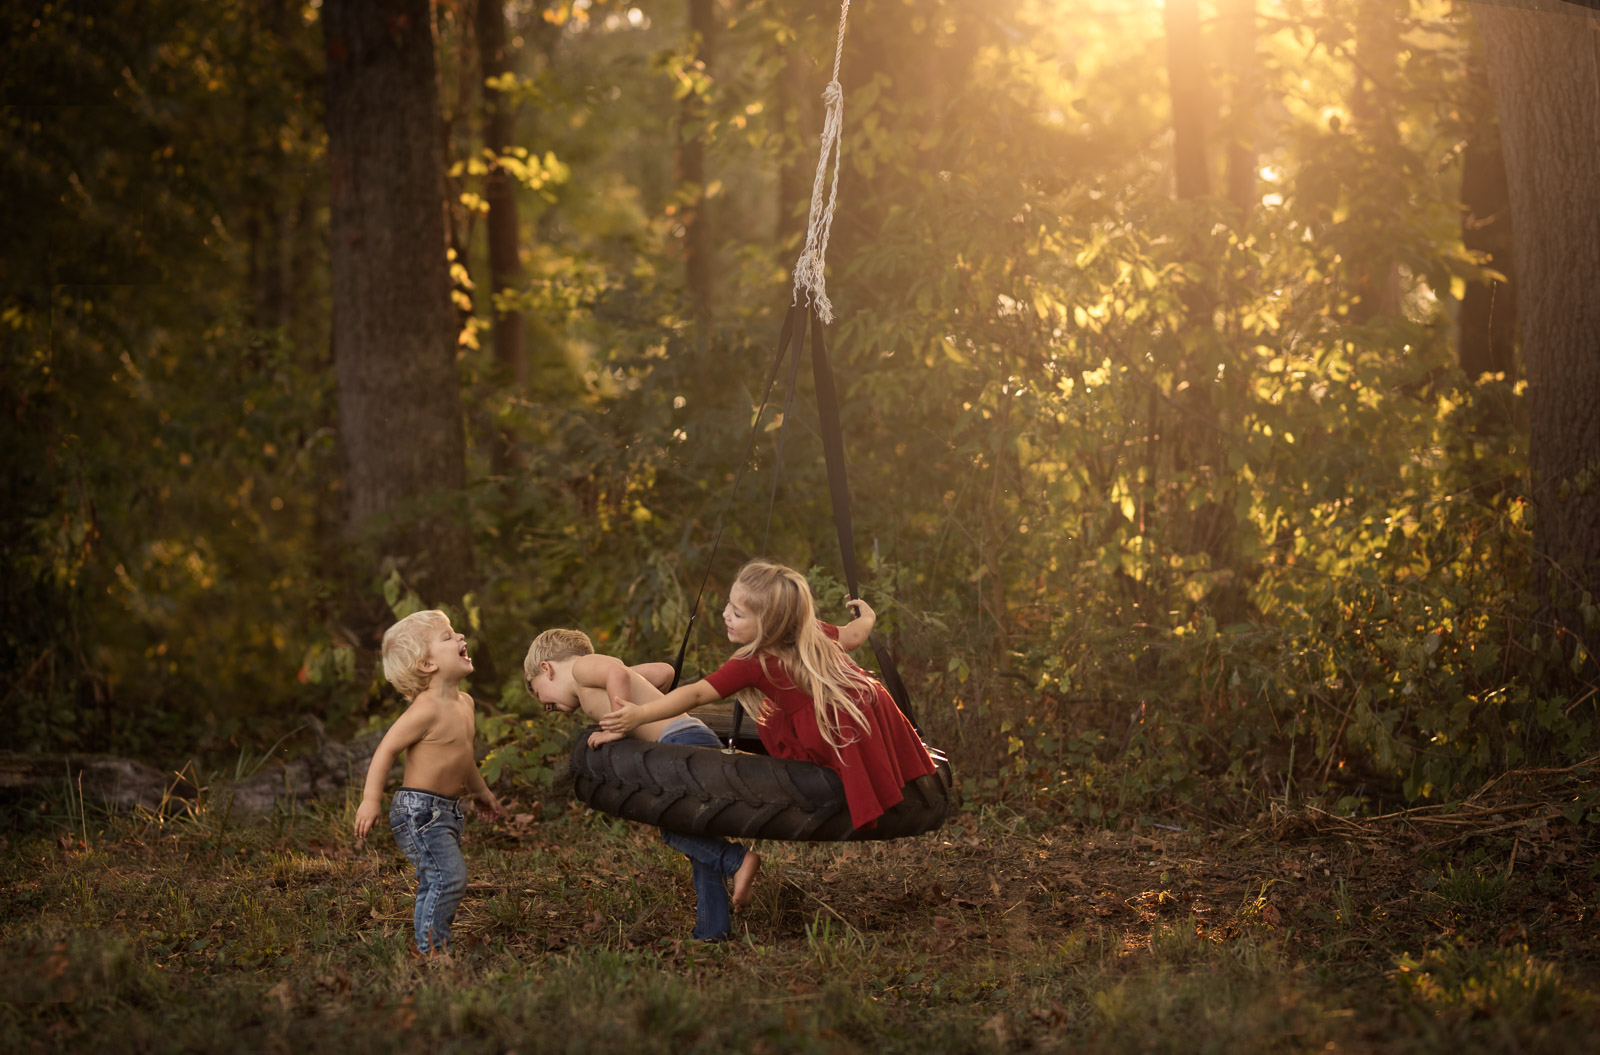 photo of three siblings playing by Danielle Awwad